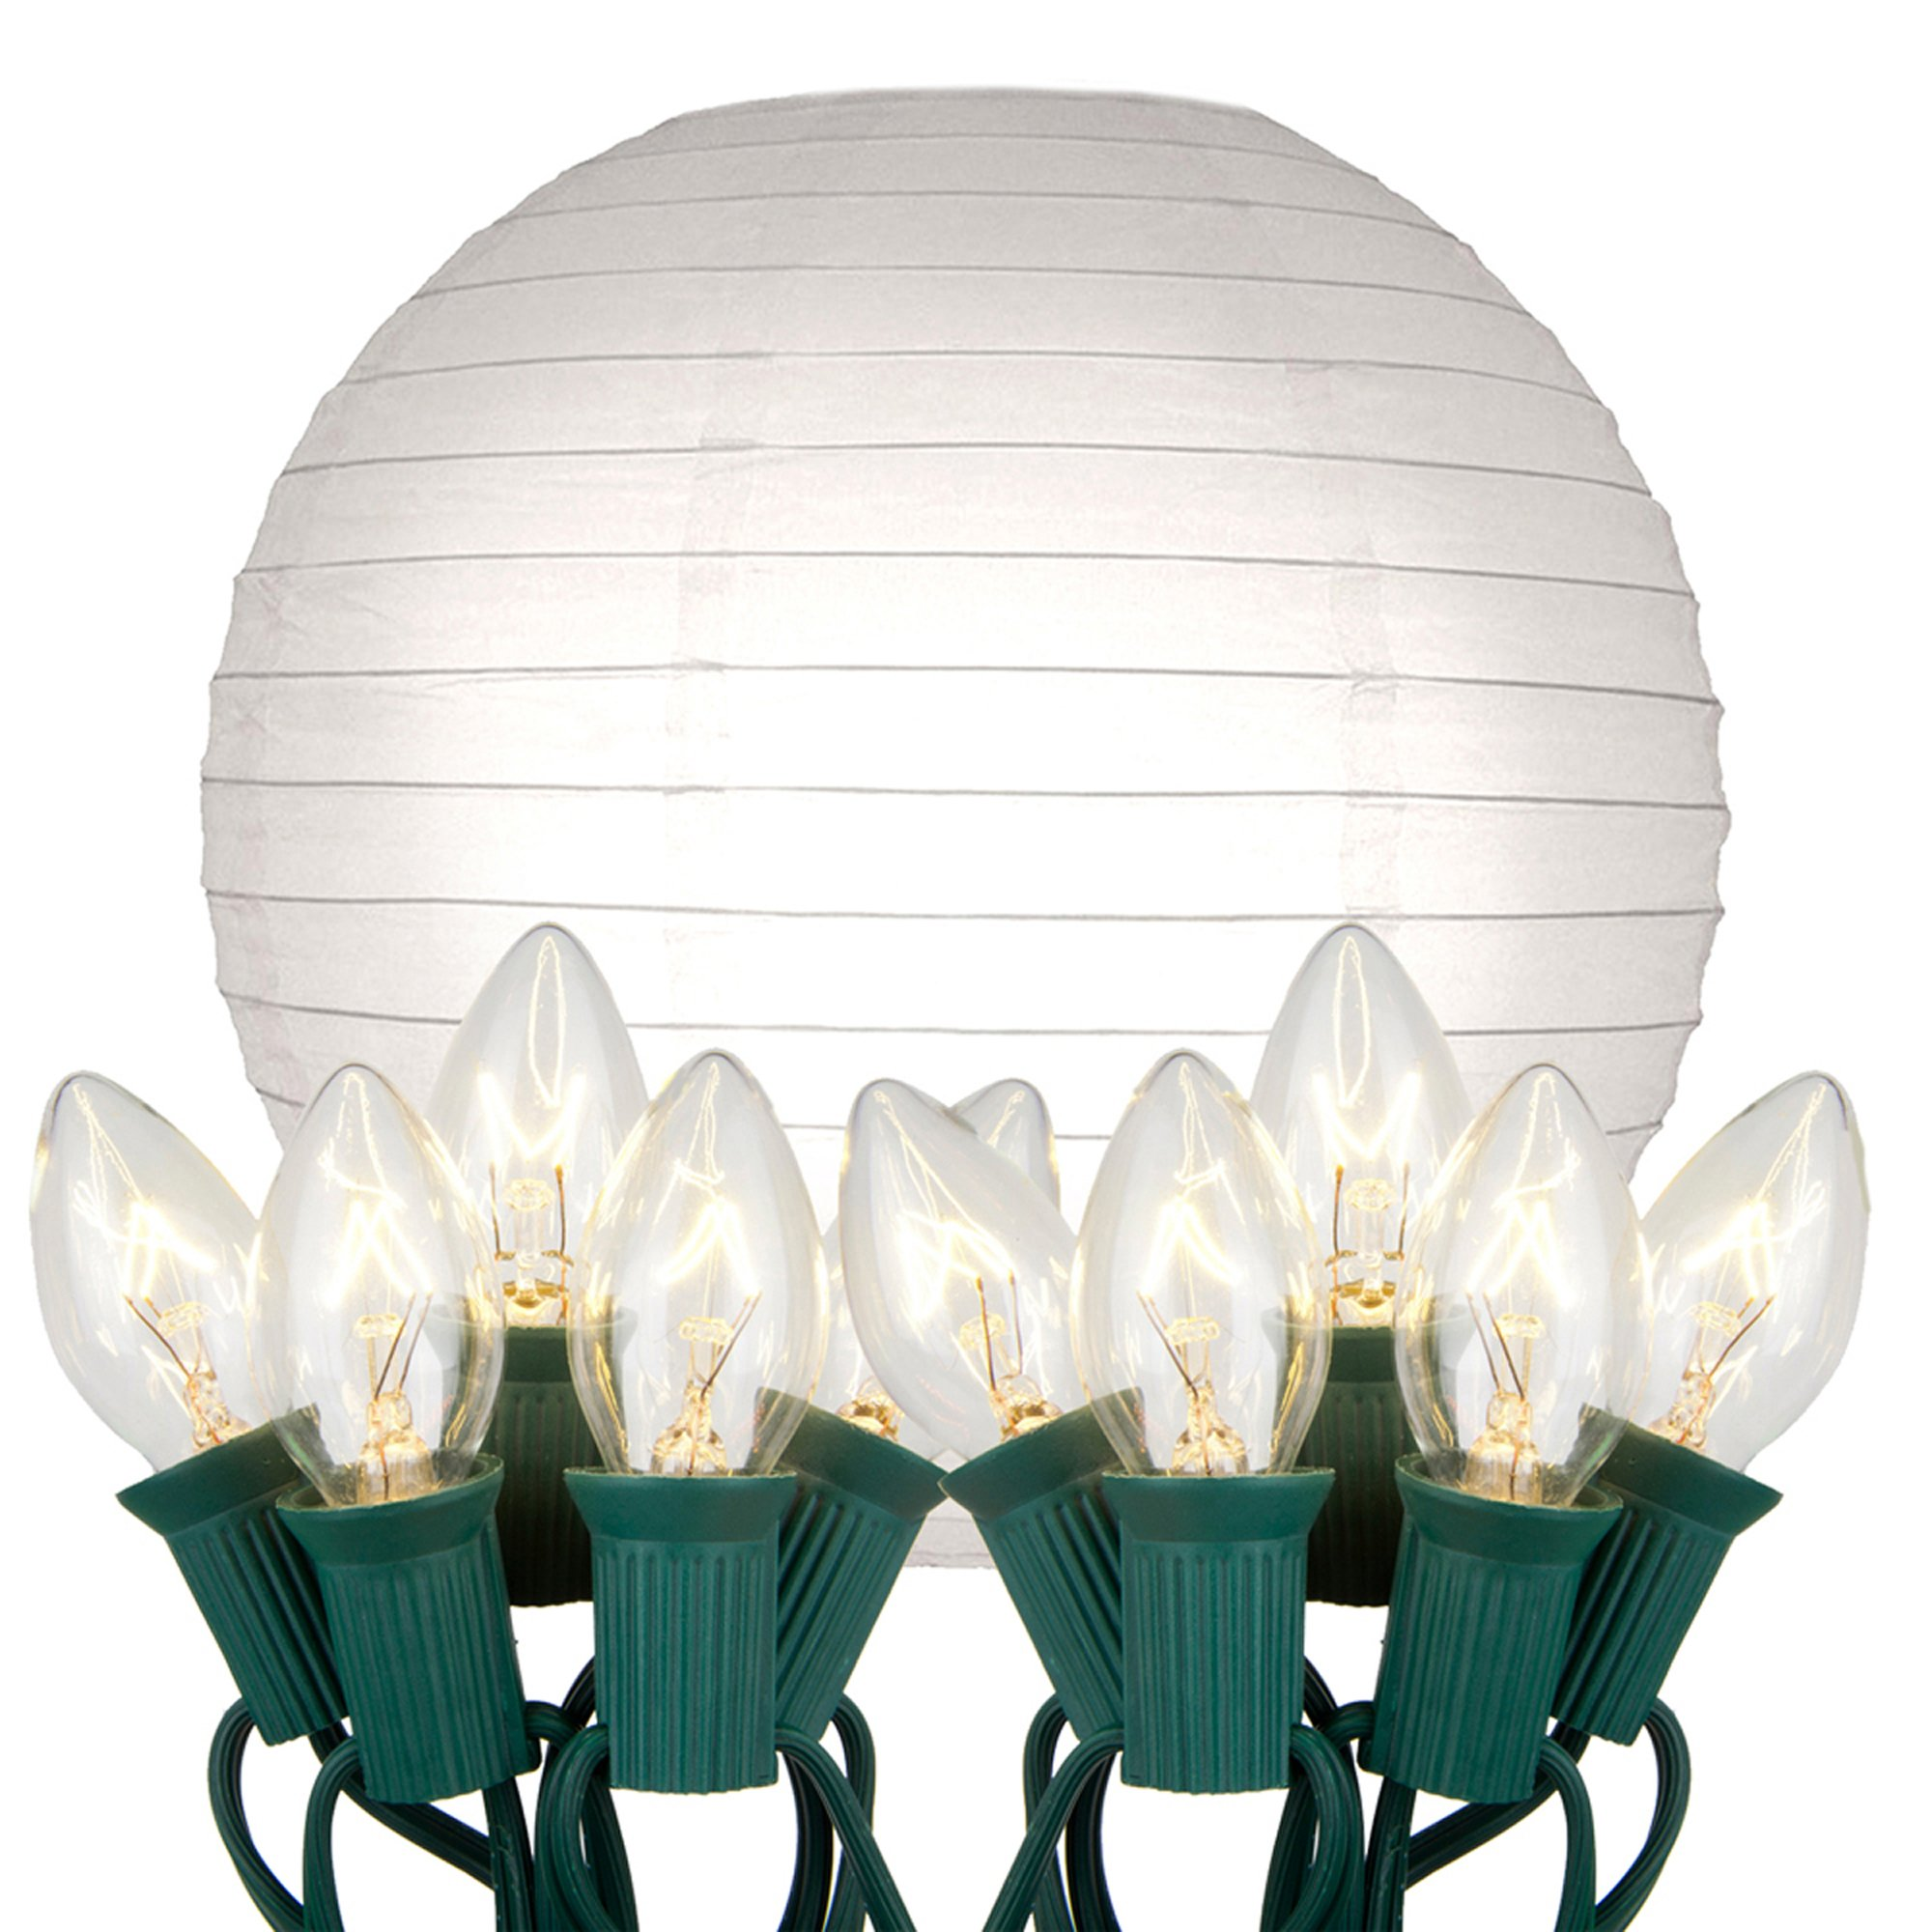 Lumabase 24010 10 Count Electric String Lights with Paper Lanterns, 10'', White by Lumabase